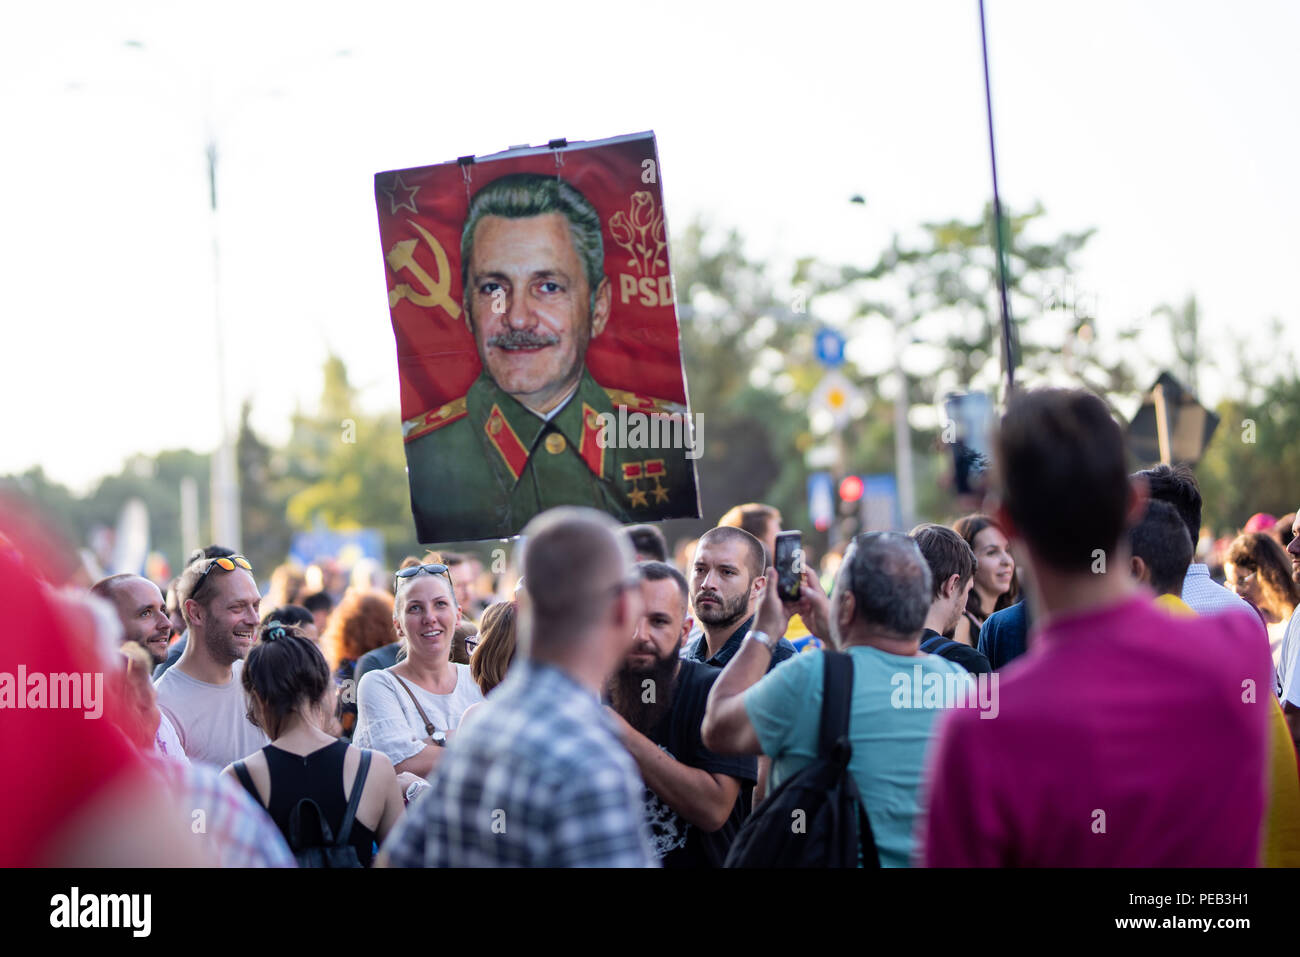 Romania, Bucharest - August 10, 2018: Protesters displaying an illustration of Liviu Dragnea as communist - Stock Image